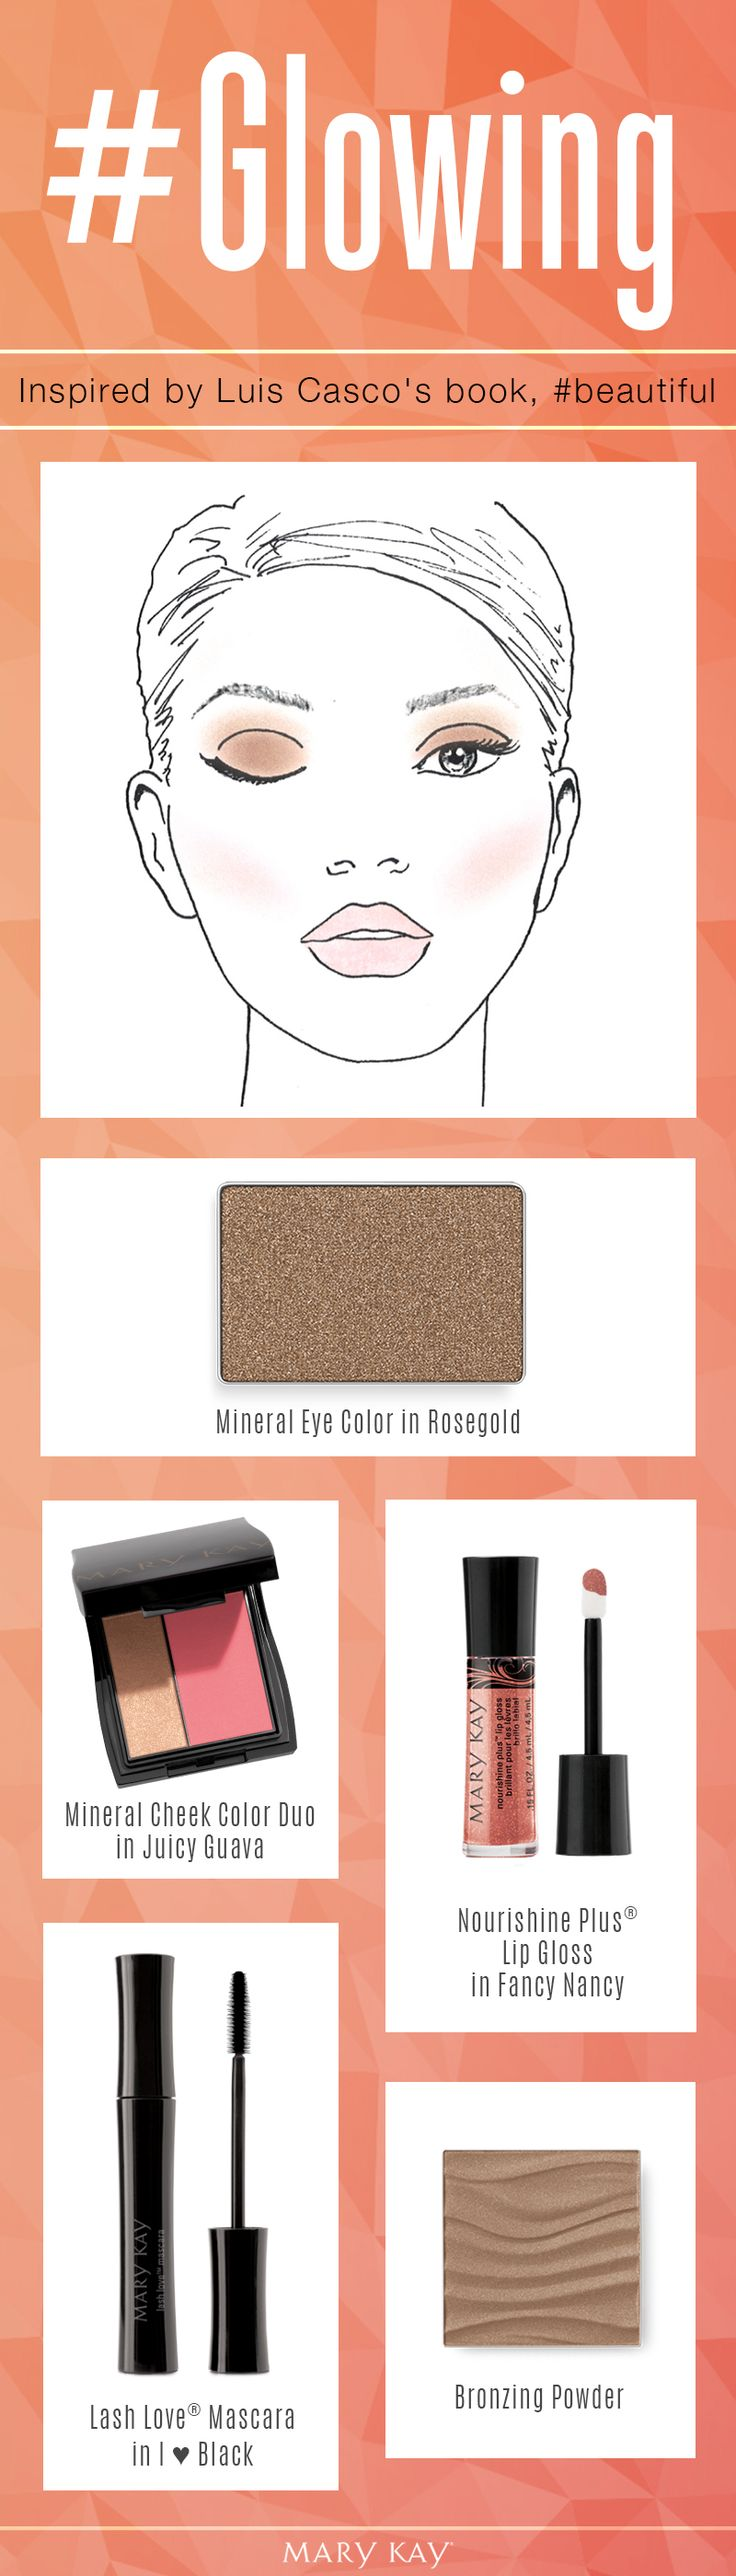 Get up and glow! These five products create a natural, sun-kissed makeup look, even if it's been too many months since you've been to the beach. | Mary Kay